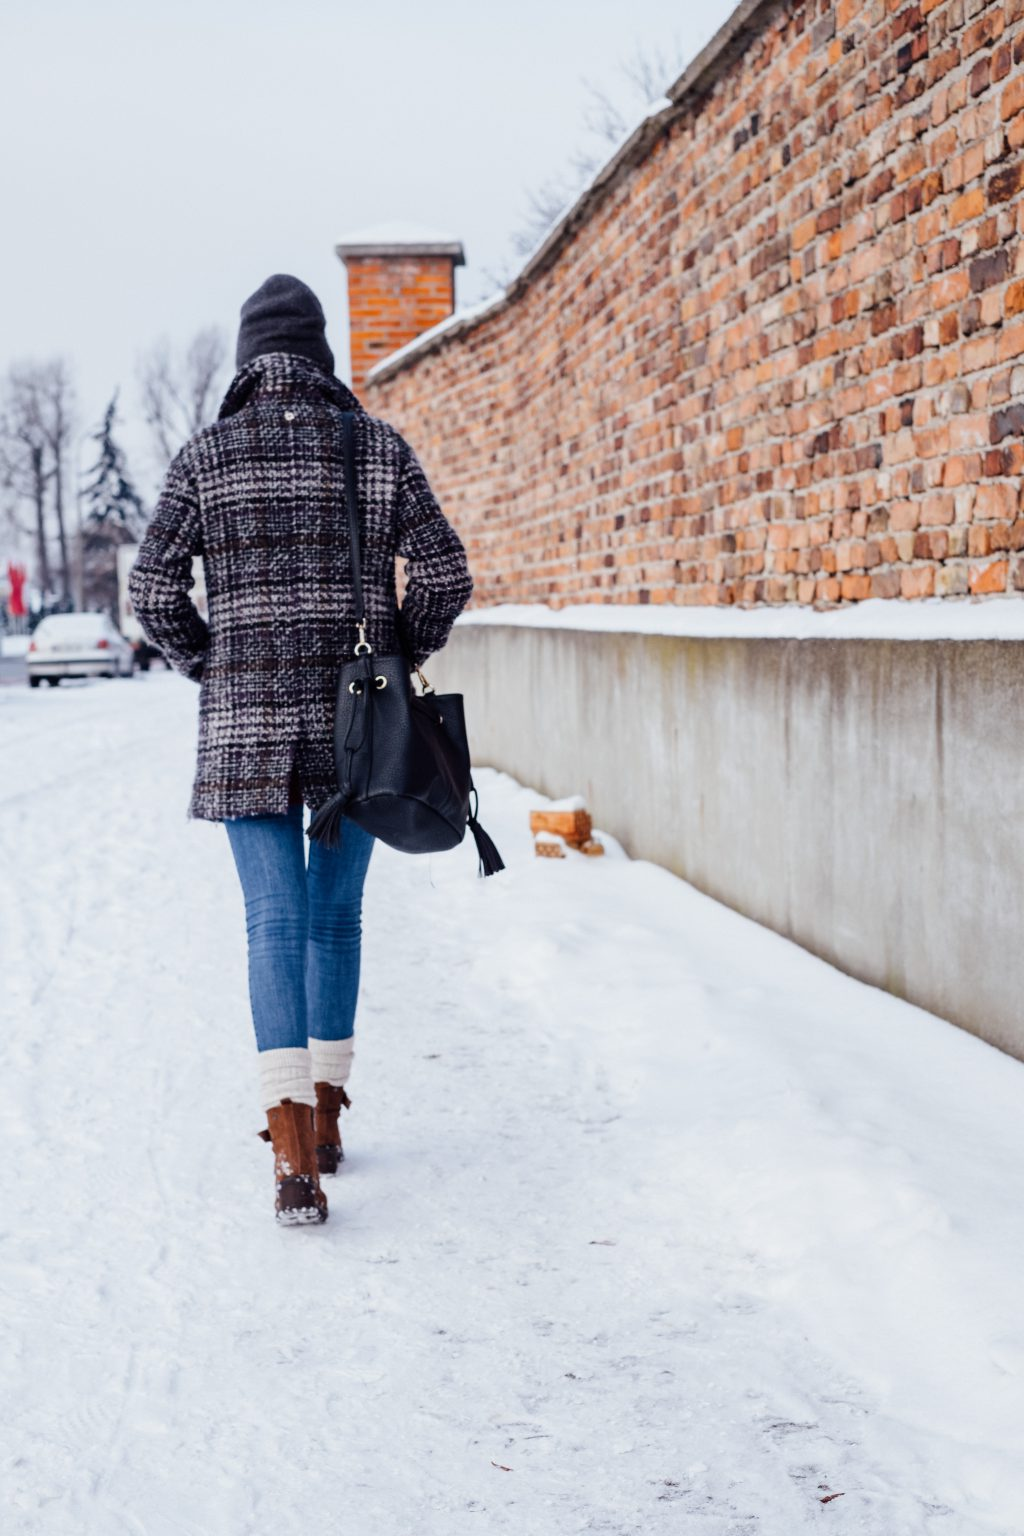 A female walking on a snow-covered pavement 2 - free stock photo